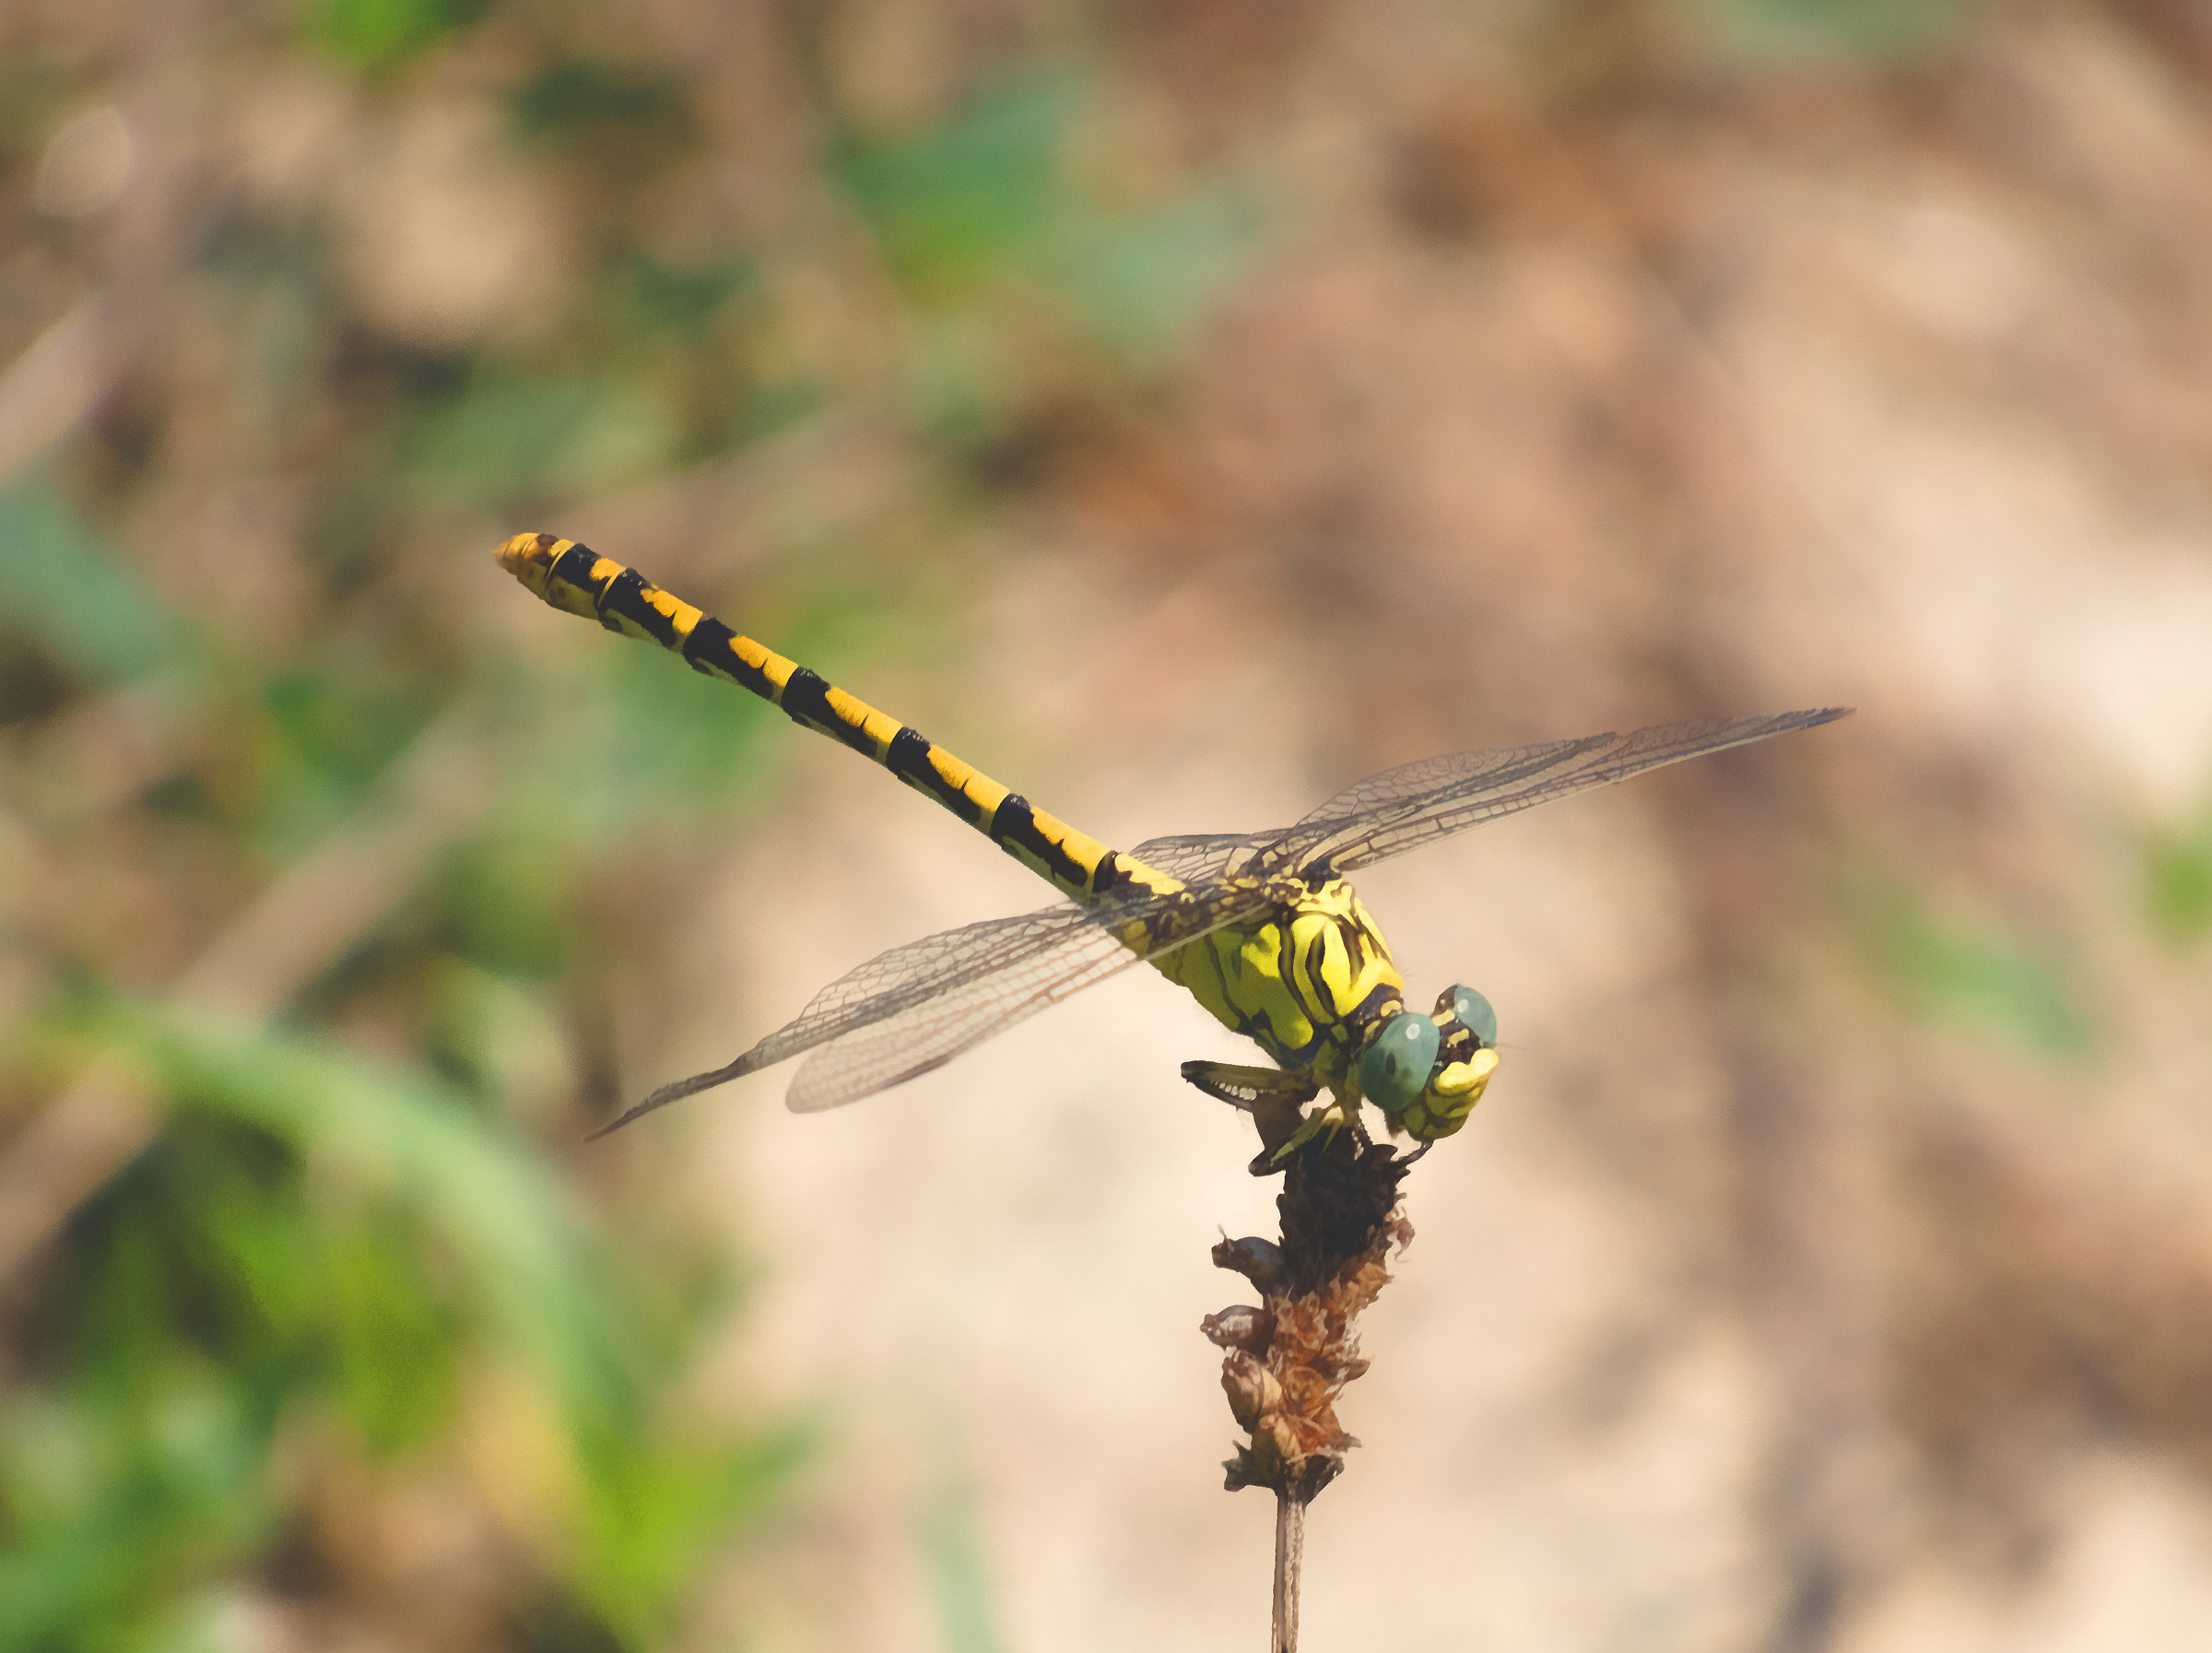 The same dragonfly with Gimp...